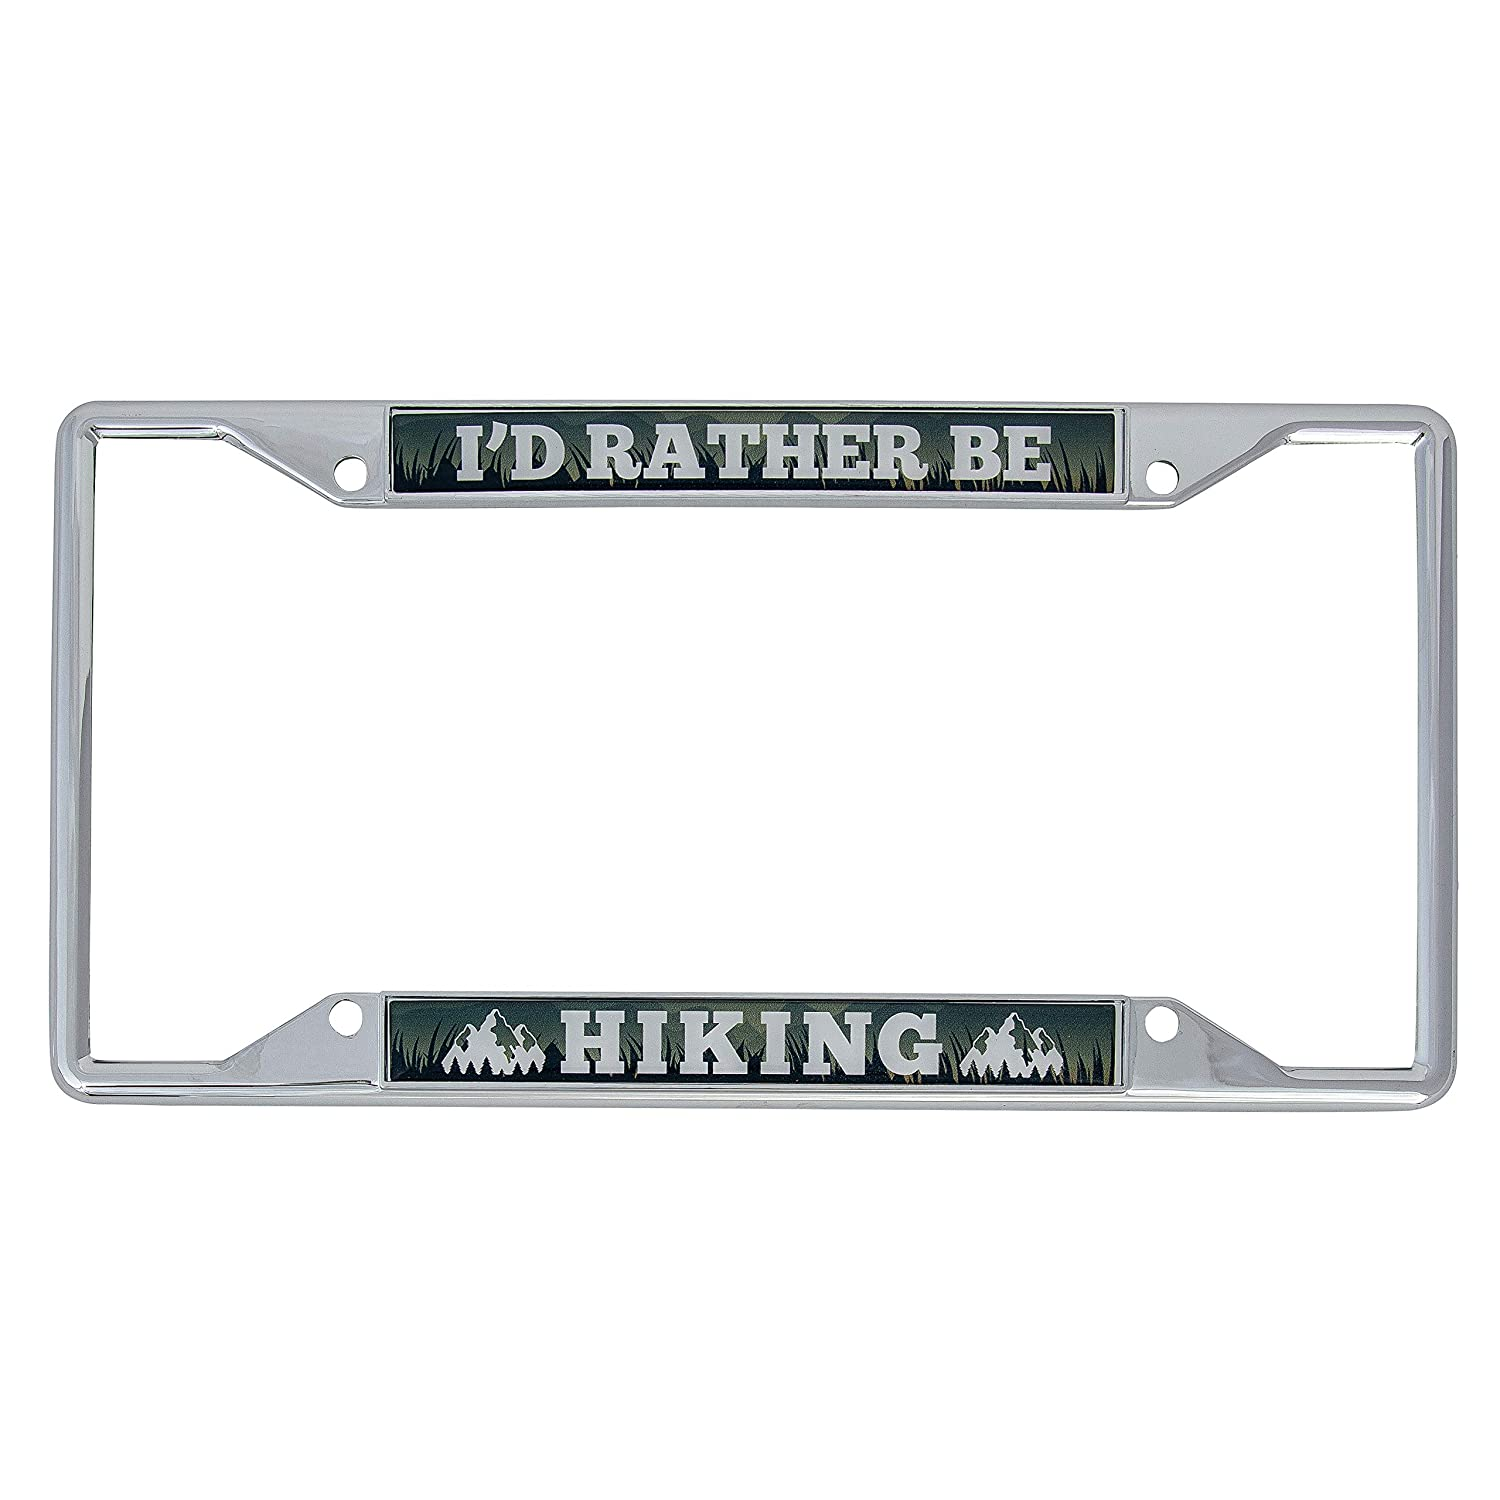 Hiking Desert Cactus Id Rather Be Hiking Metal Auto License Plate Frame Car Tag Holder